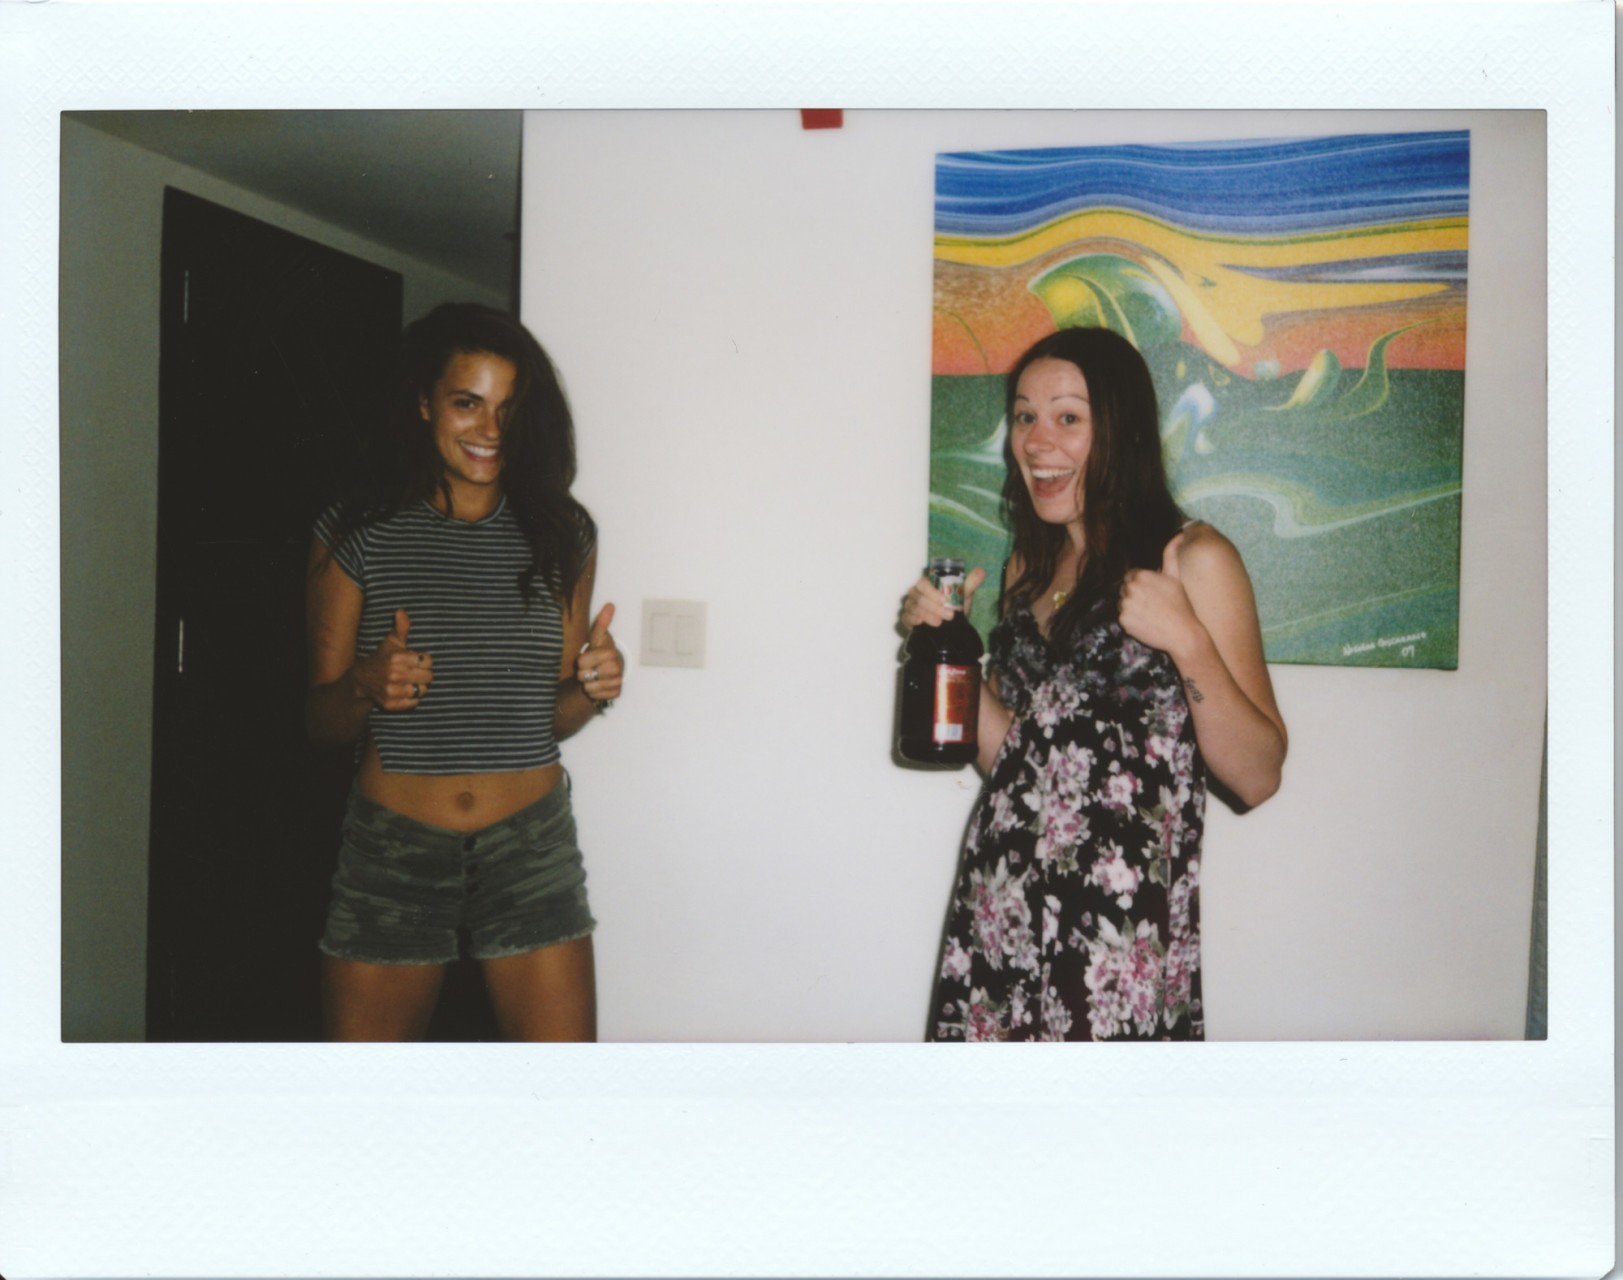 Polaroid-web_Scan-140813-00050005